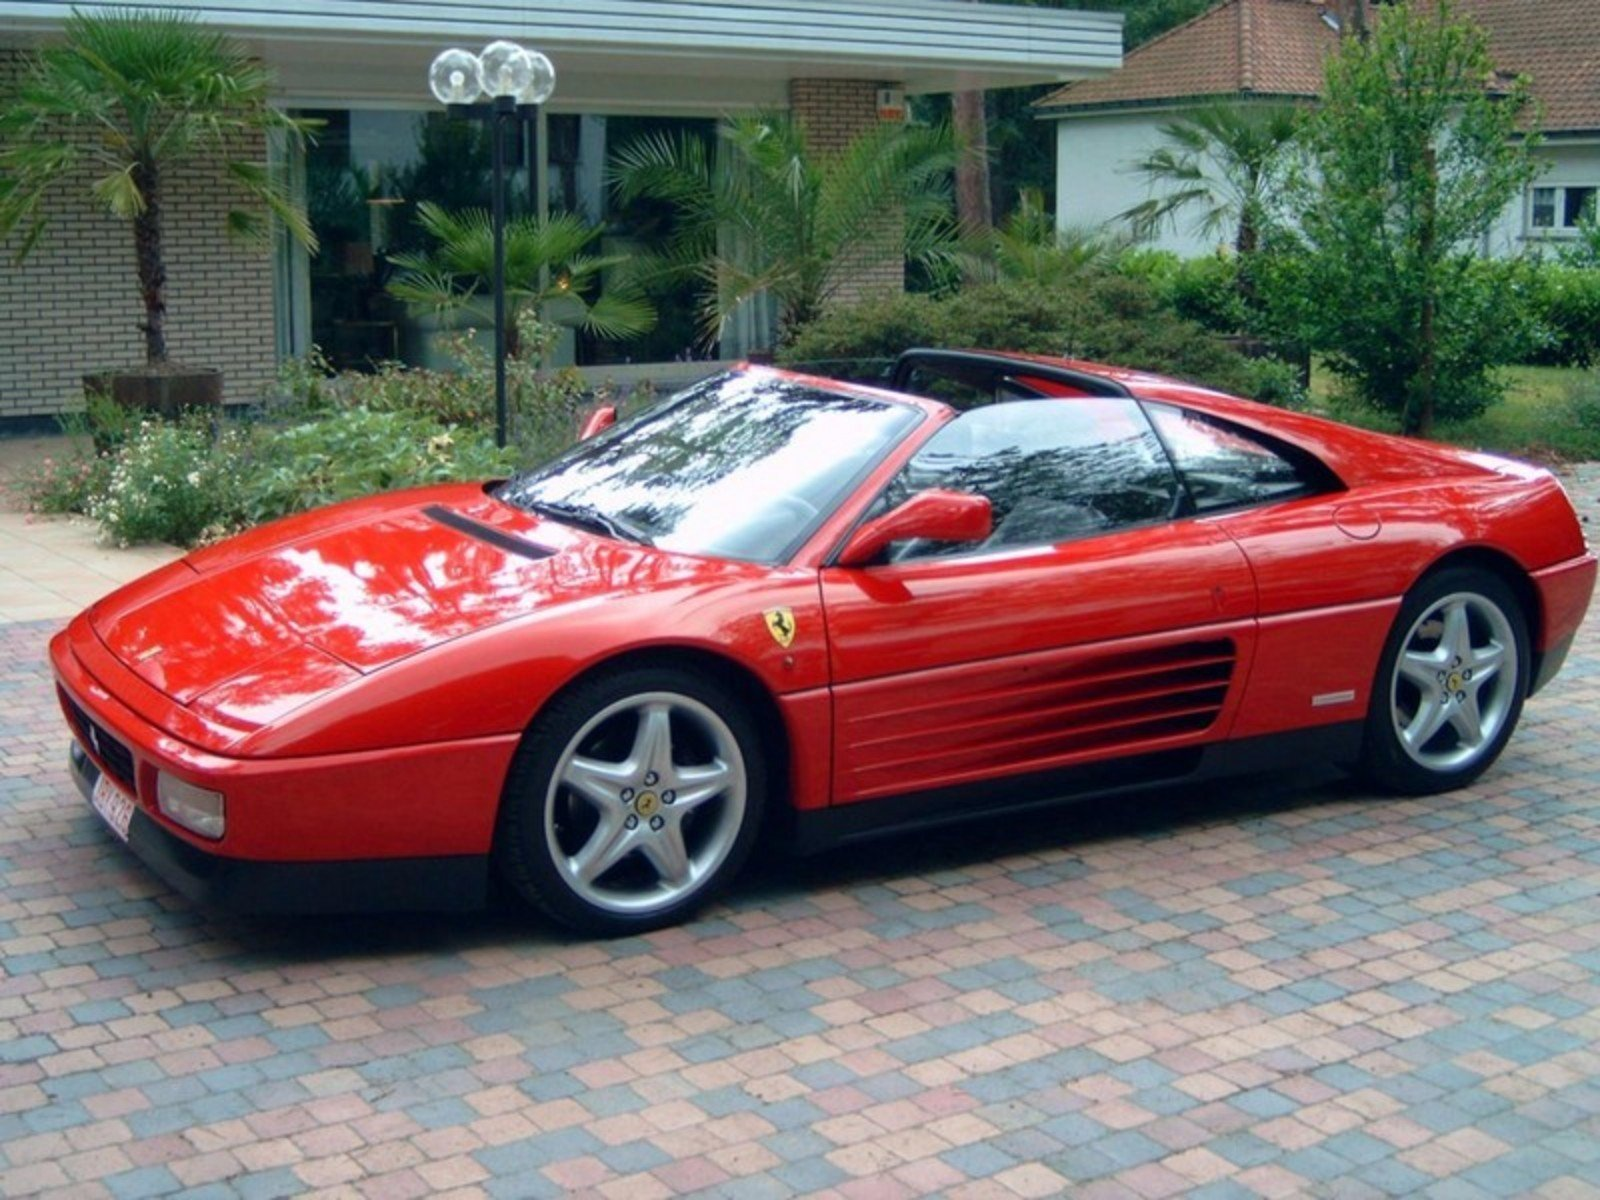 1989 1995 ferrari 348 ts picture 40361 car review top speed. Black Bedroom Furniture Sets. Home Design Ideas